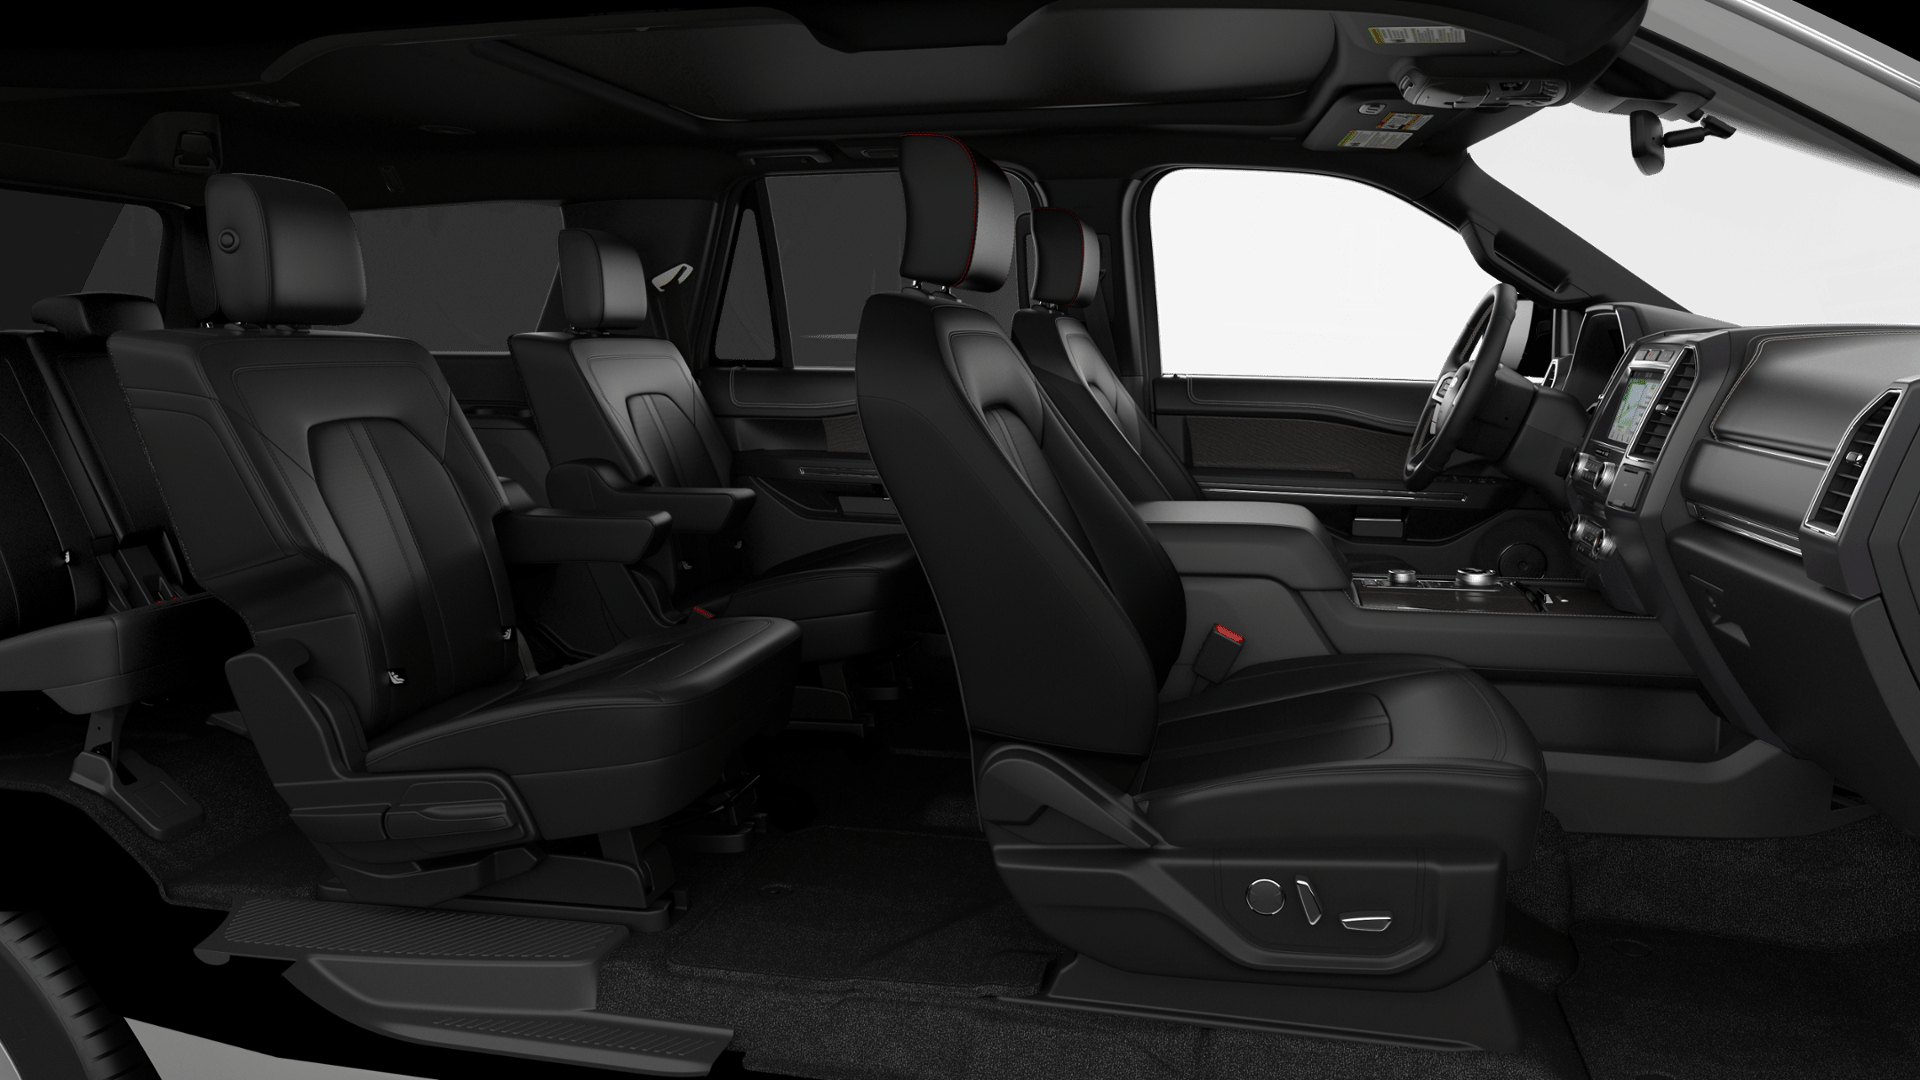 The 2019 Ford Expedition Limited Also Has Such Beautiful Interior Best Family Cars Ford Expedition New Ford F150